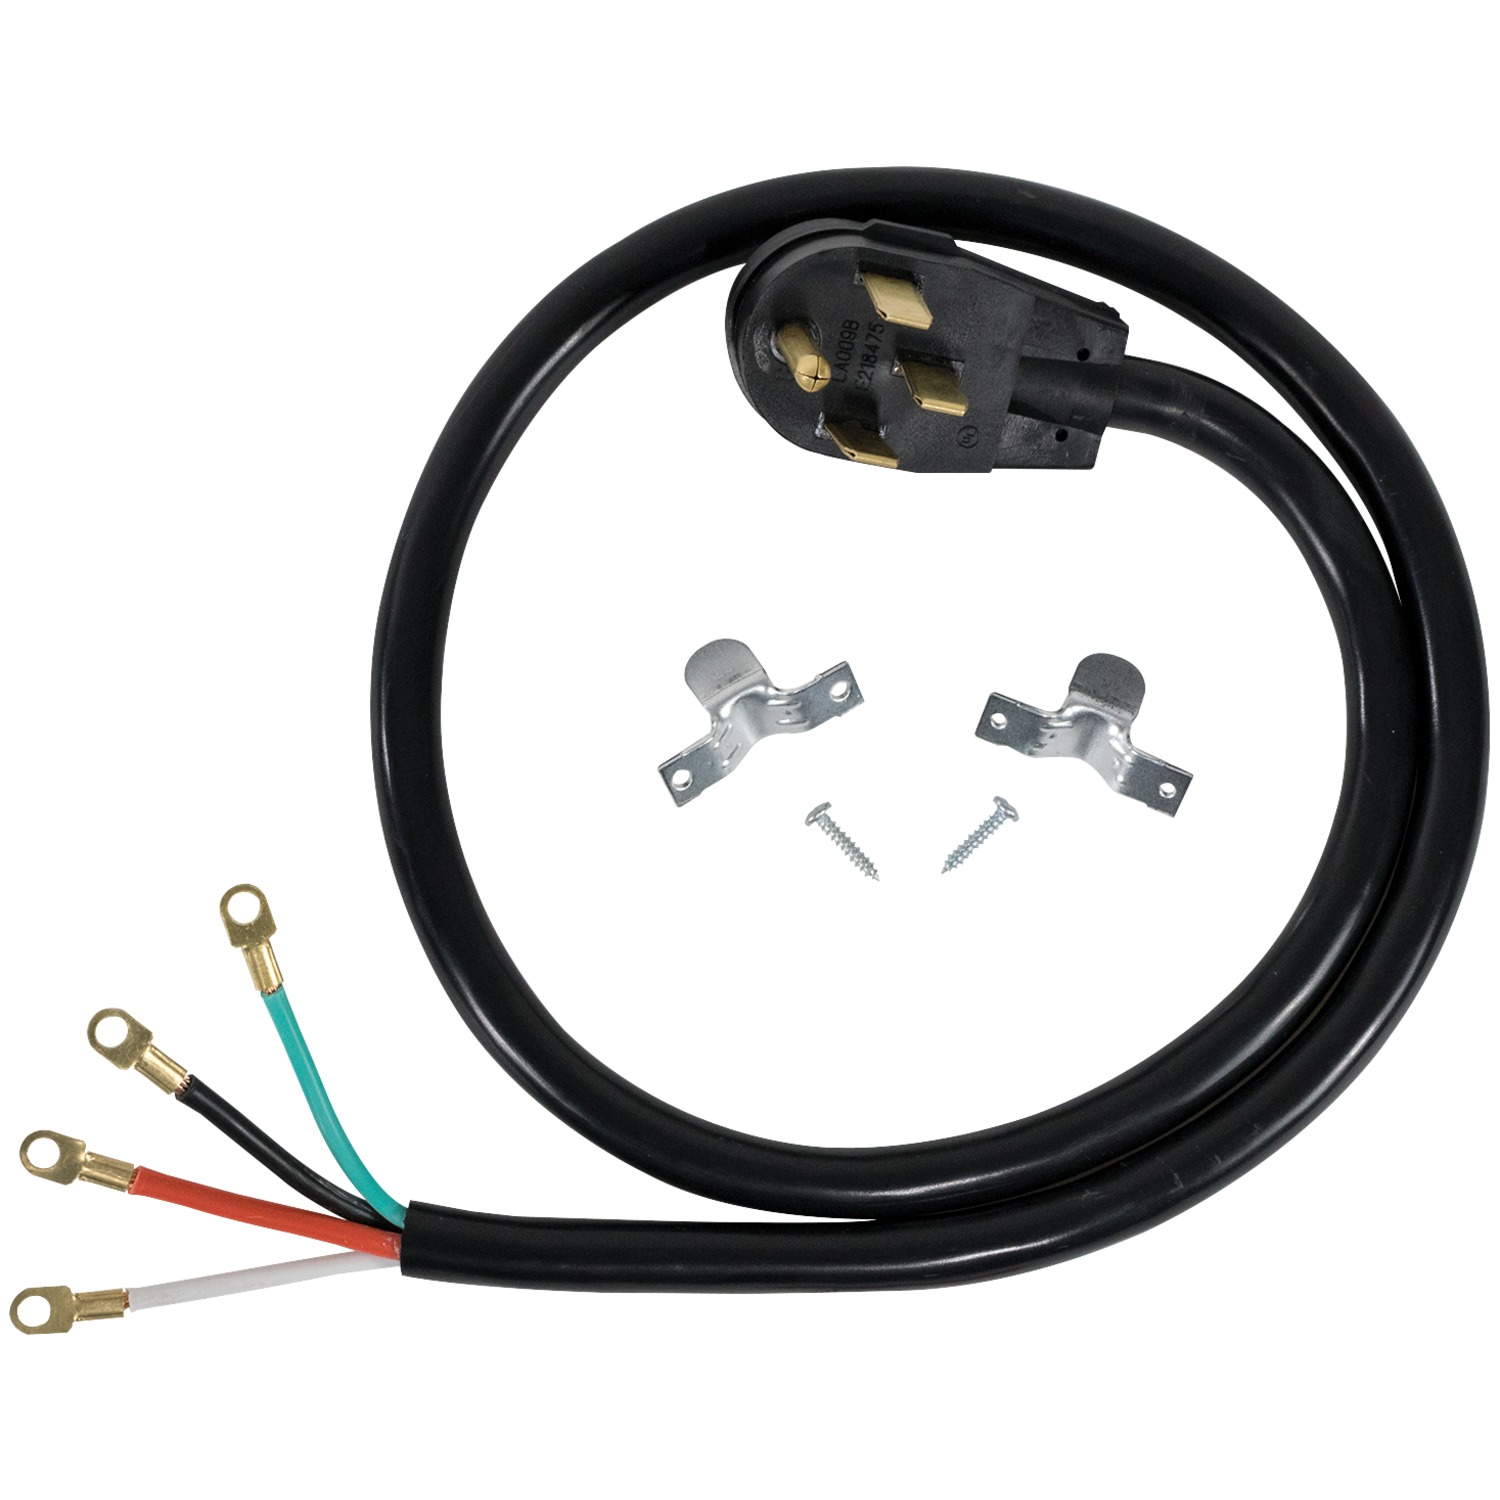 Certified Appliance Accessories 90-2062 4-Wire Closed-Eyelet 40-Amp Range Cord, 5ft